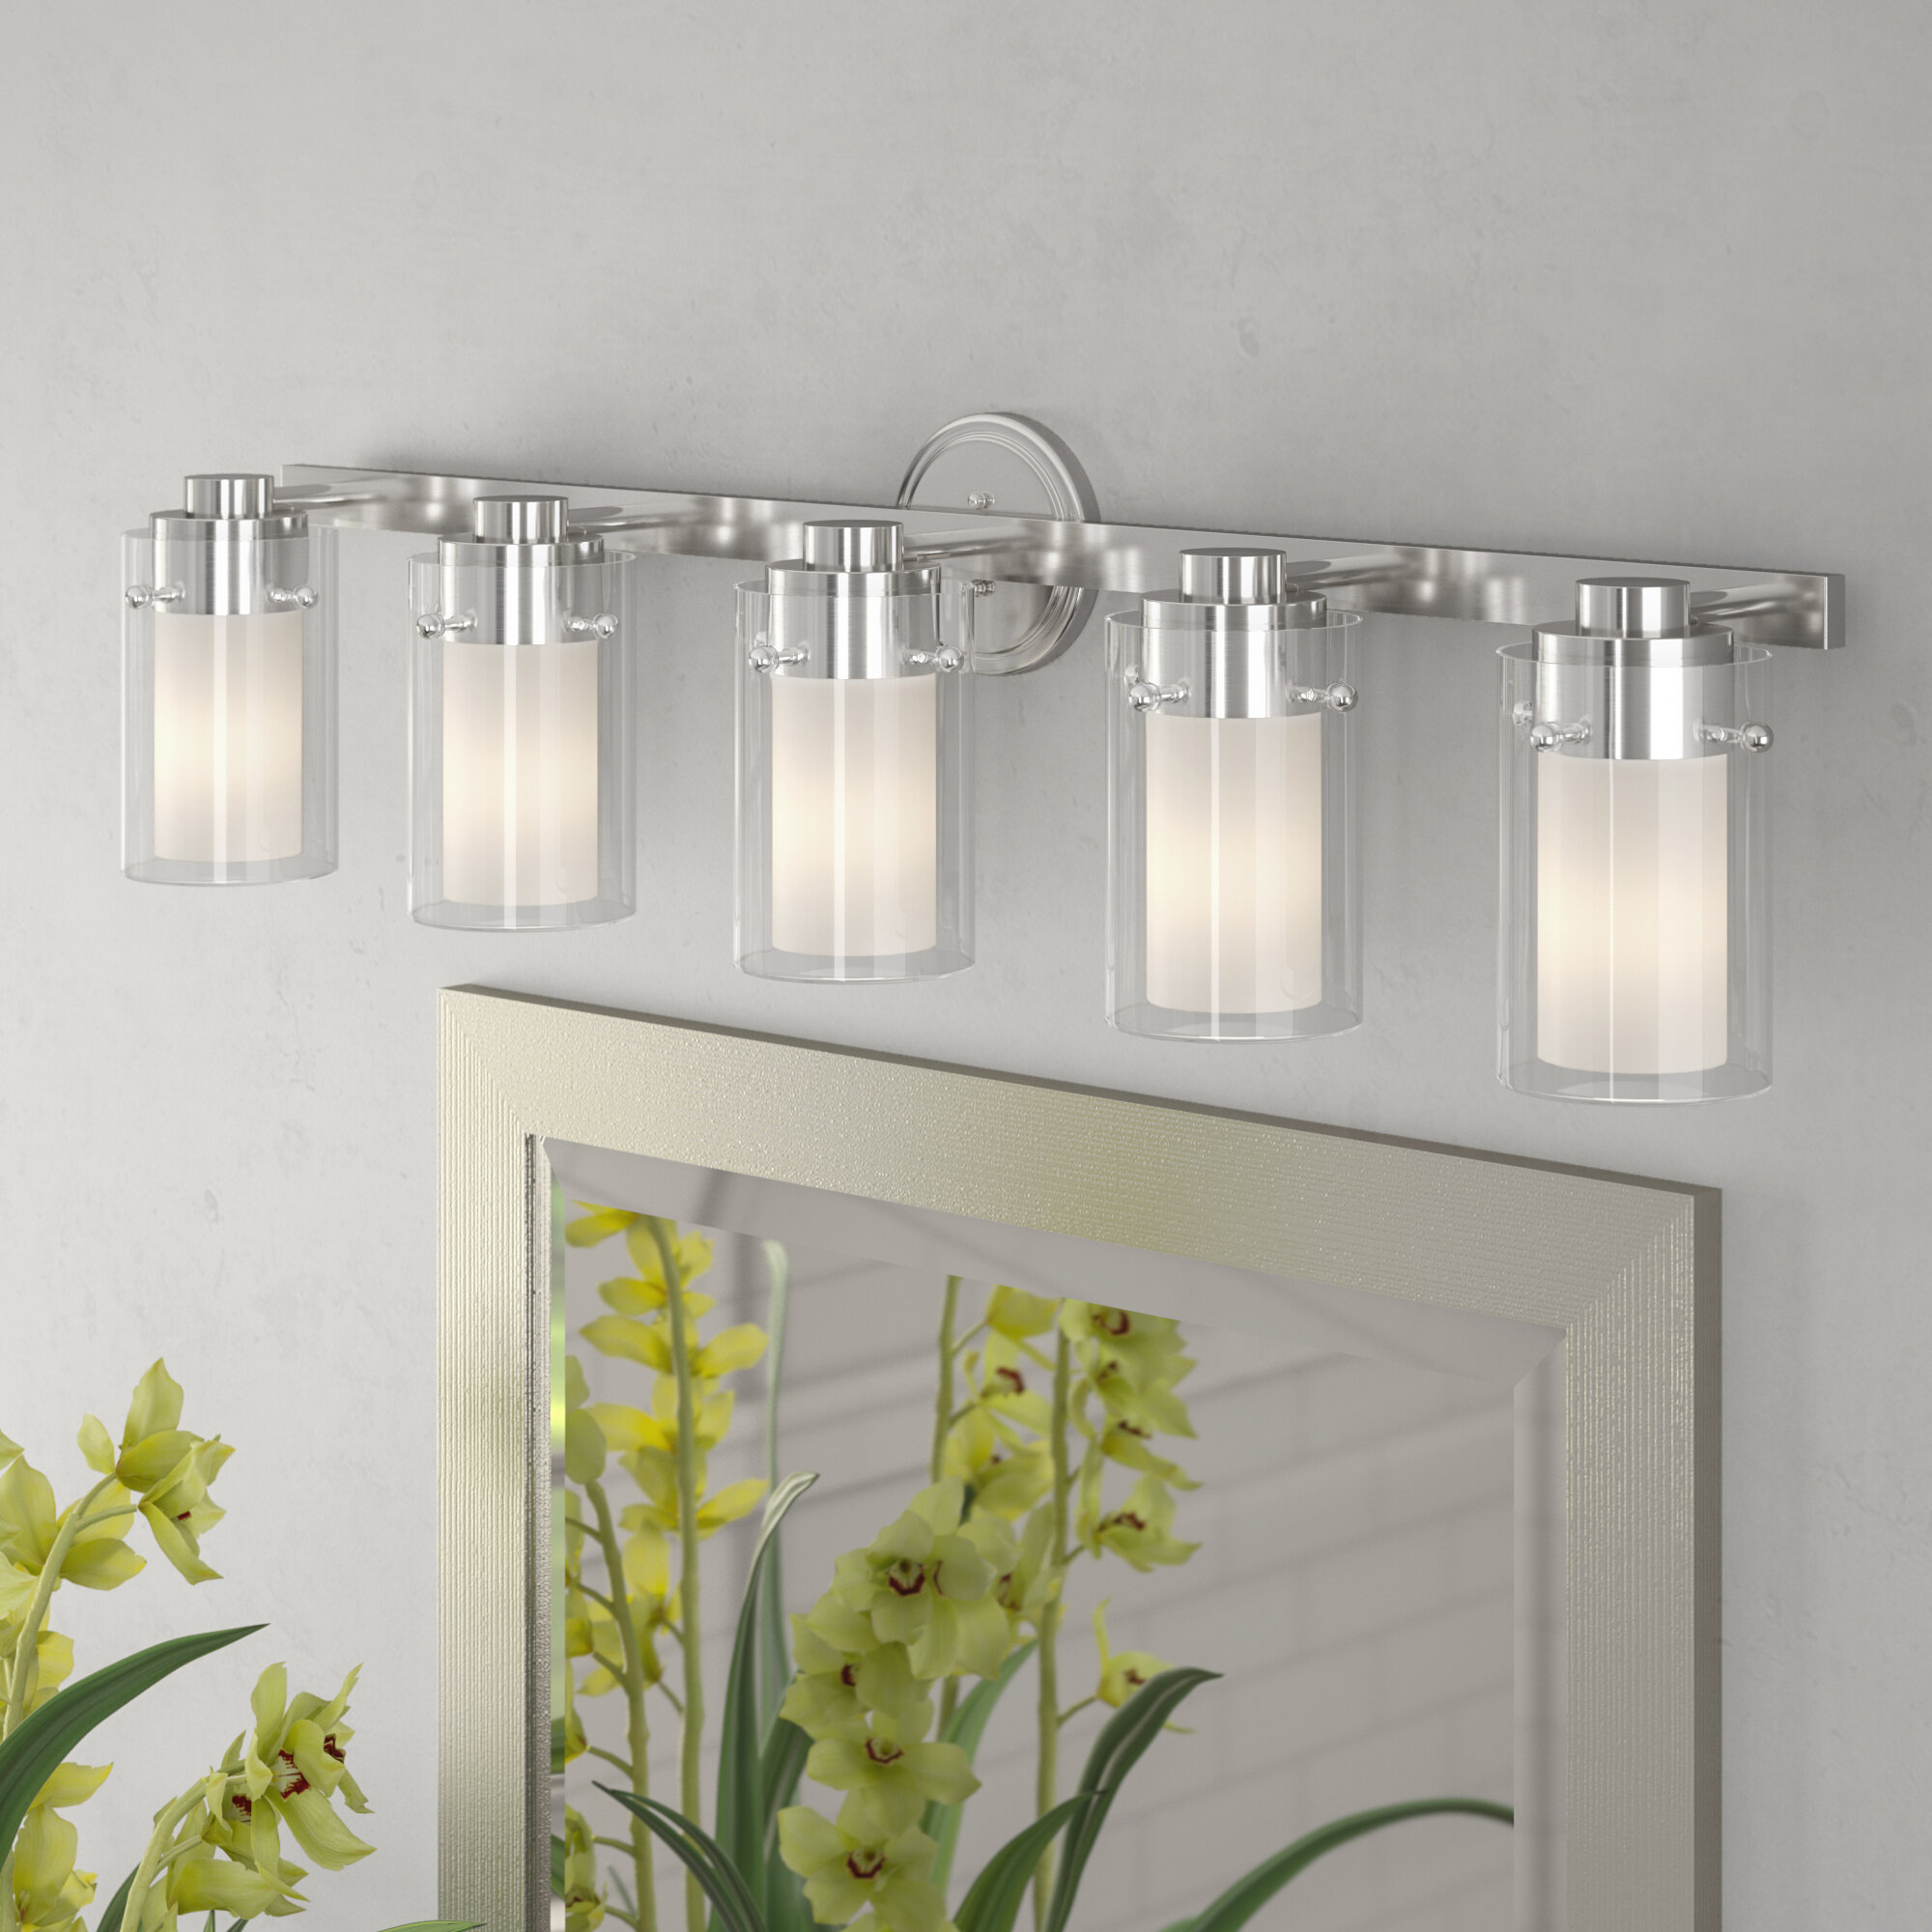 Laude Run Levi 5 Light Vanity